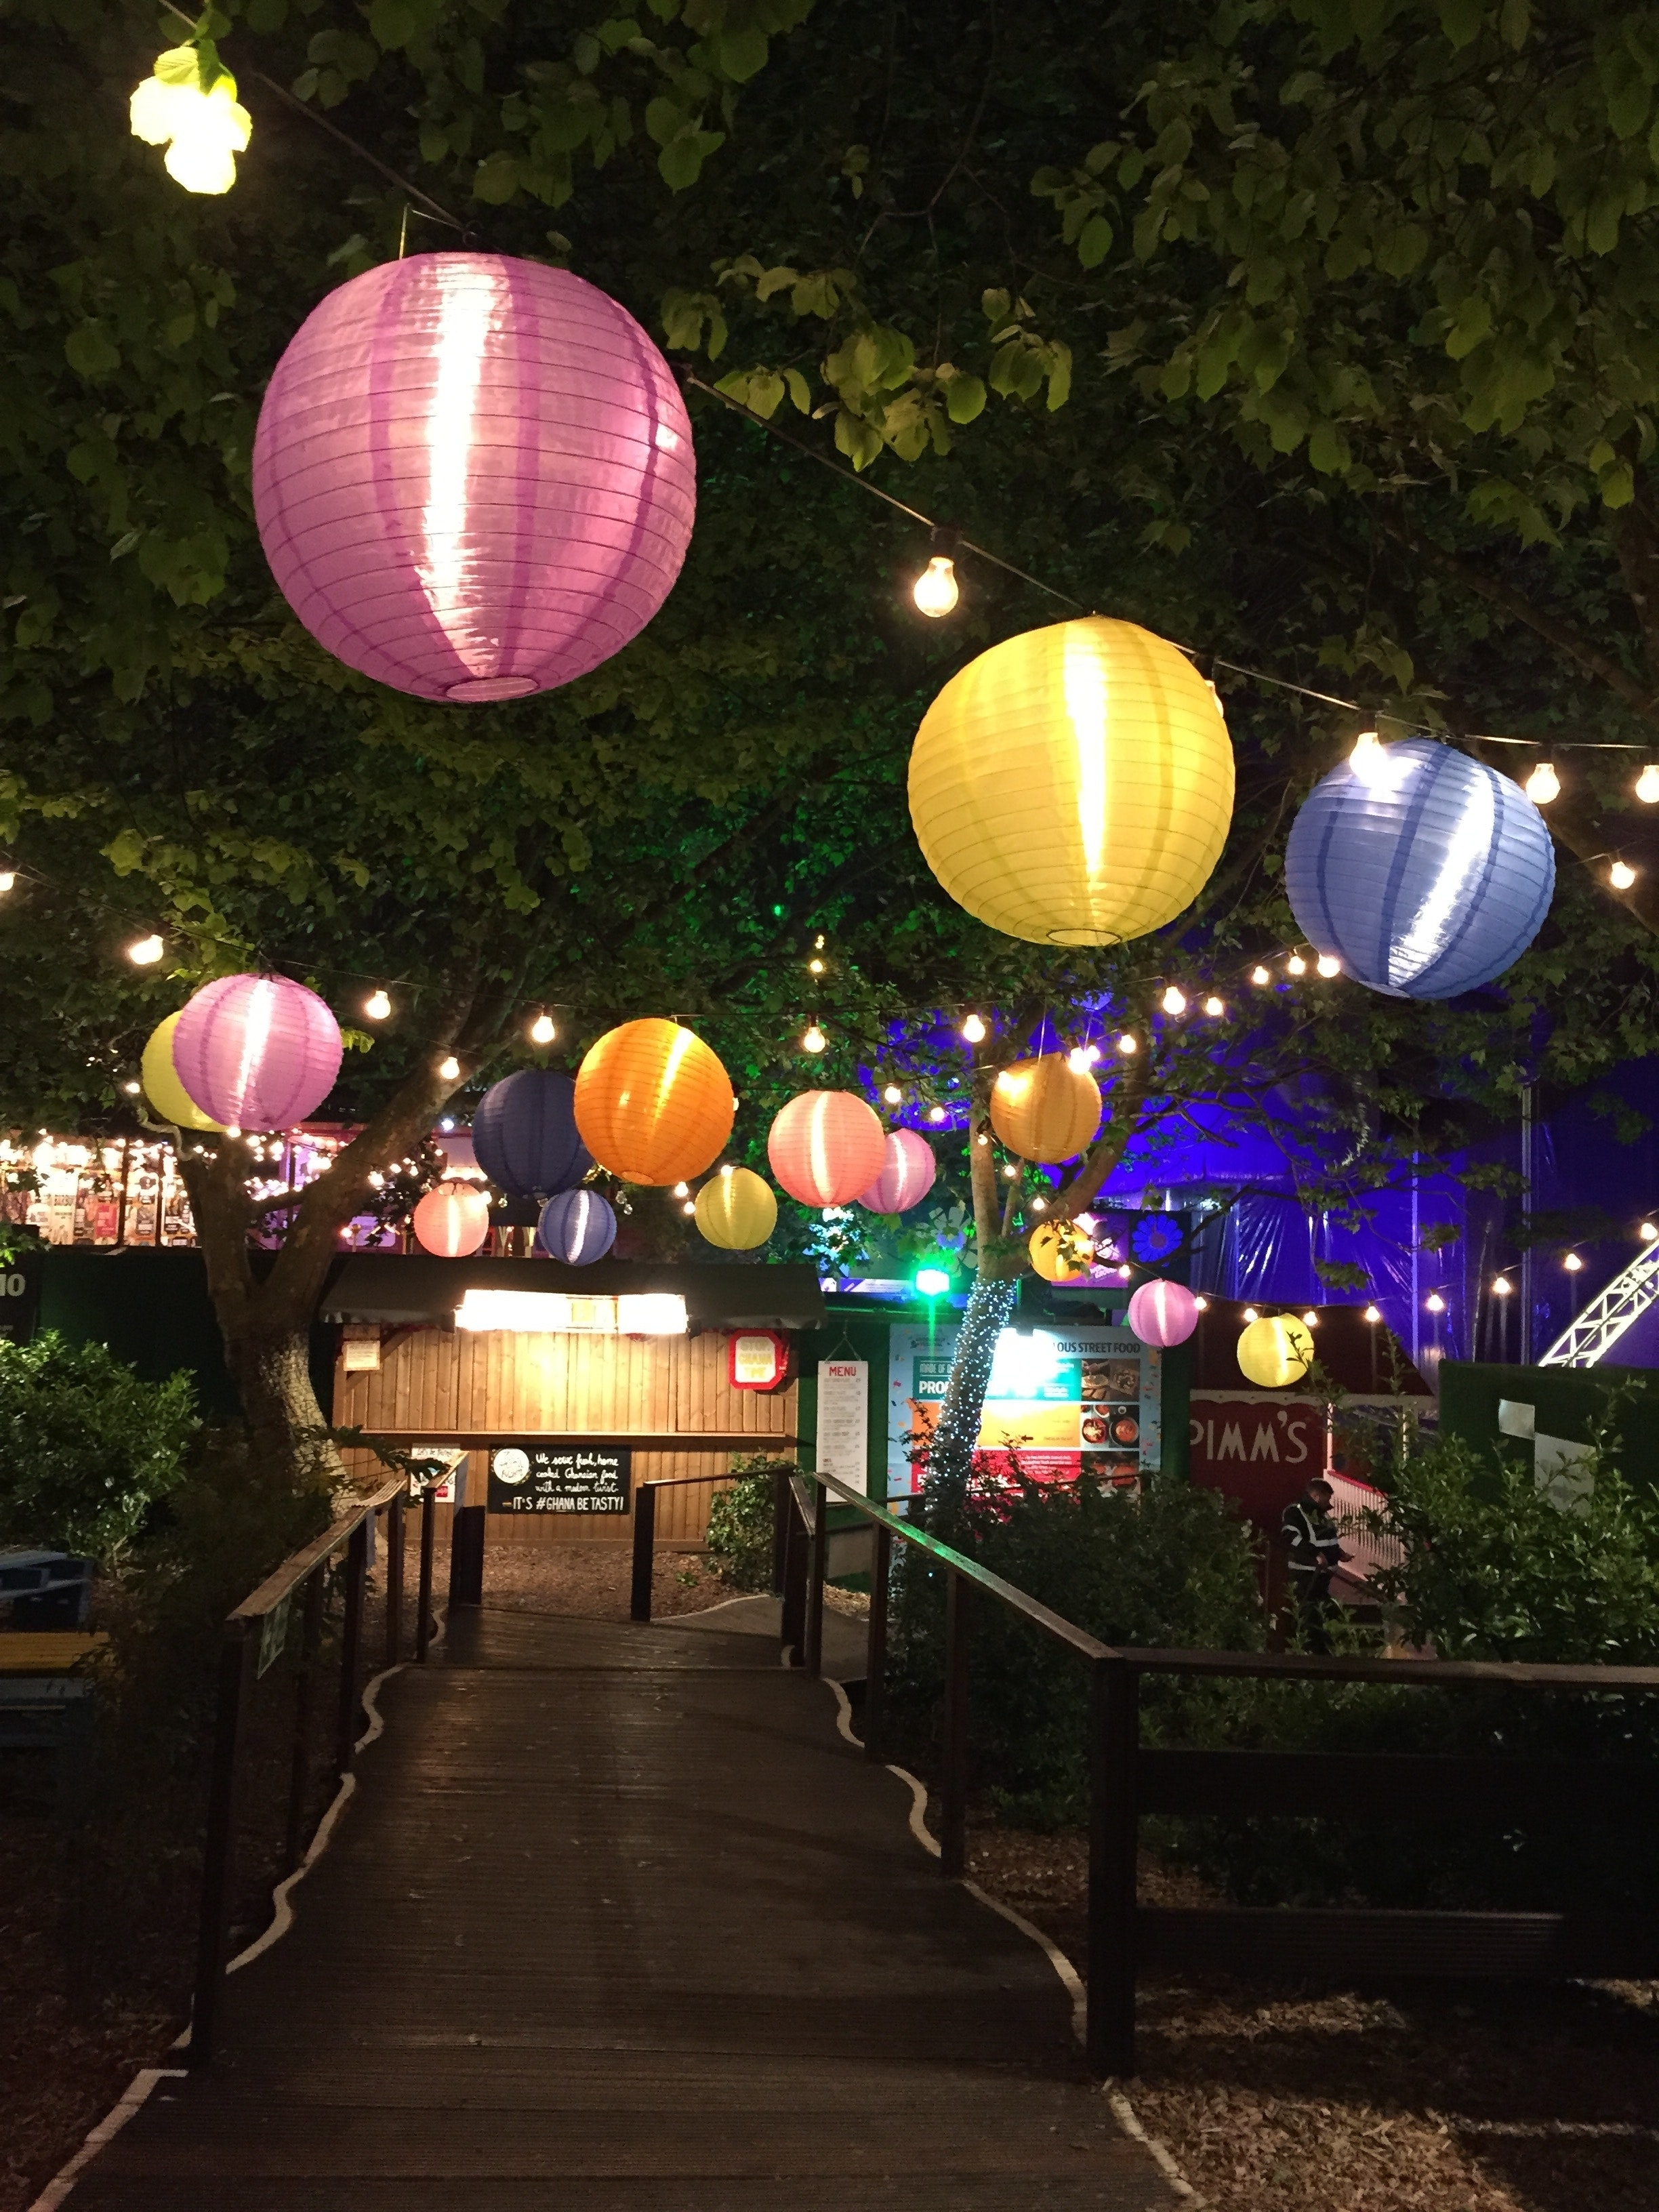 Free Photo: Assorted Hanging Paper Lamps - Paper Lanterns, Park in Outdoor Paper Lanterns (Image 12 of 20)